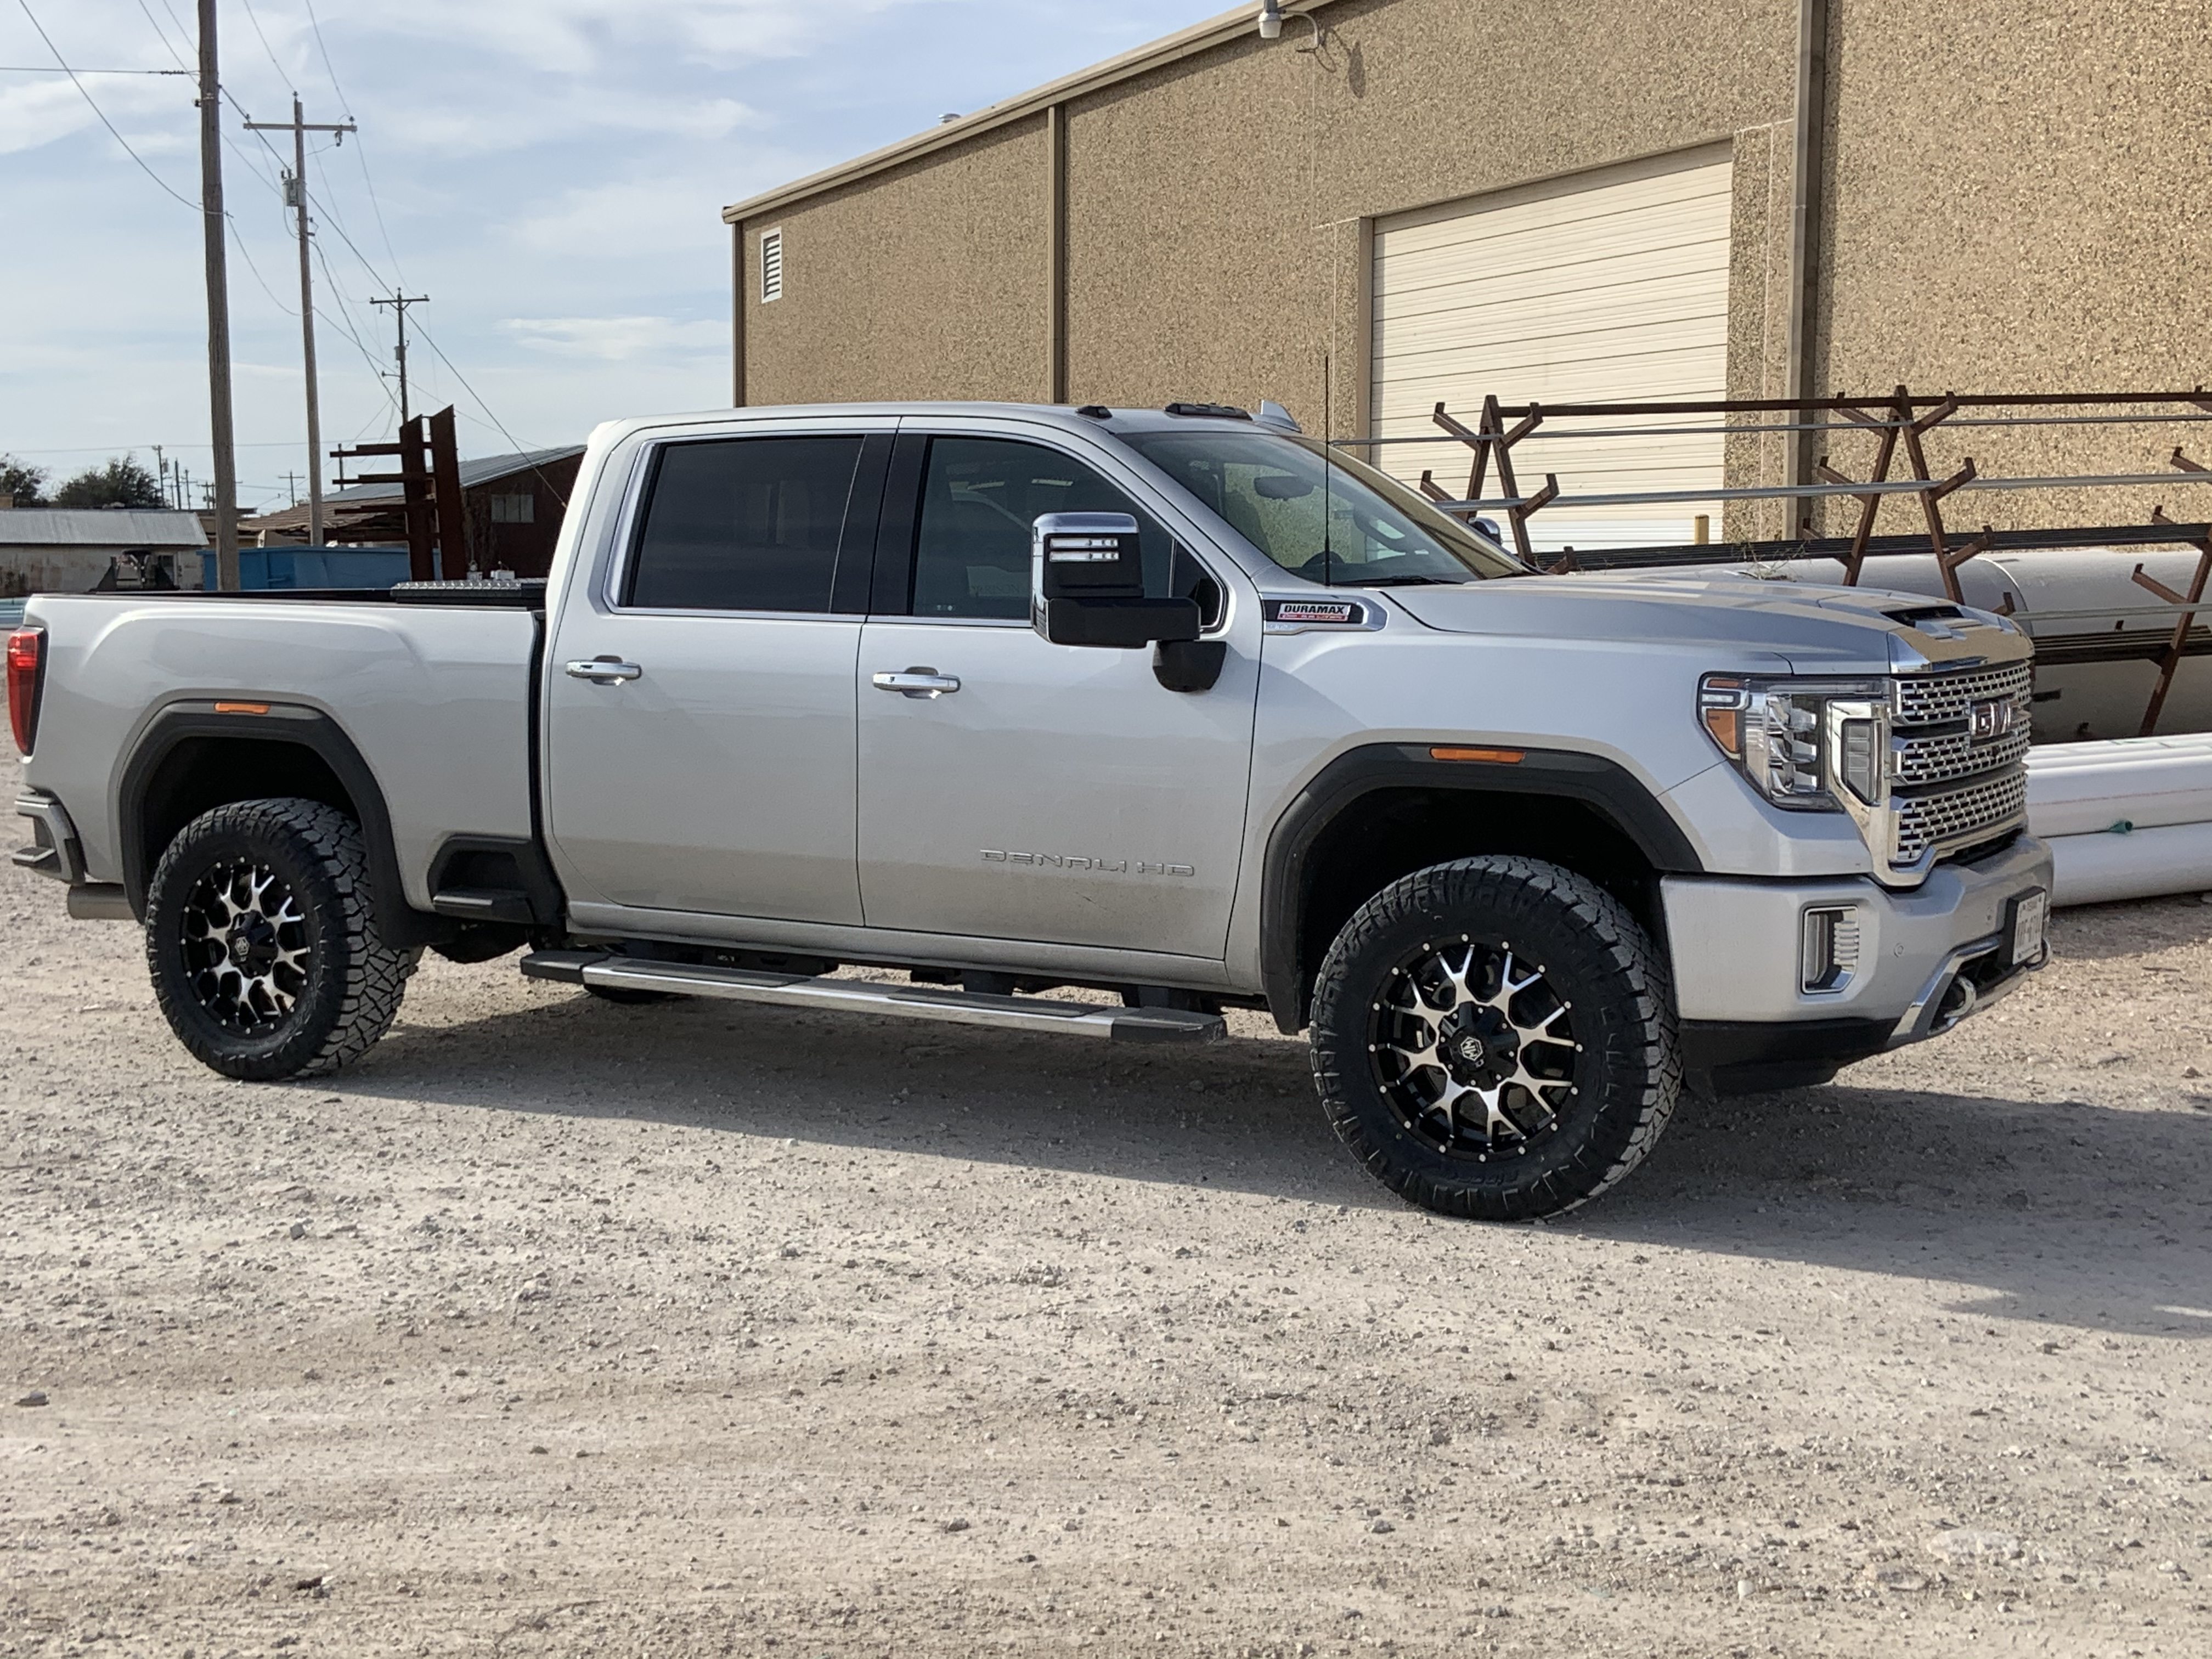 2020 Chevy Silverado 2500hd Tires And Rims Chevy And Gmc Duramax Diesel Forum